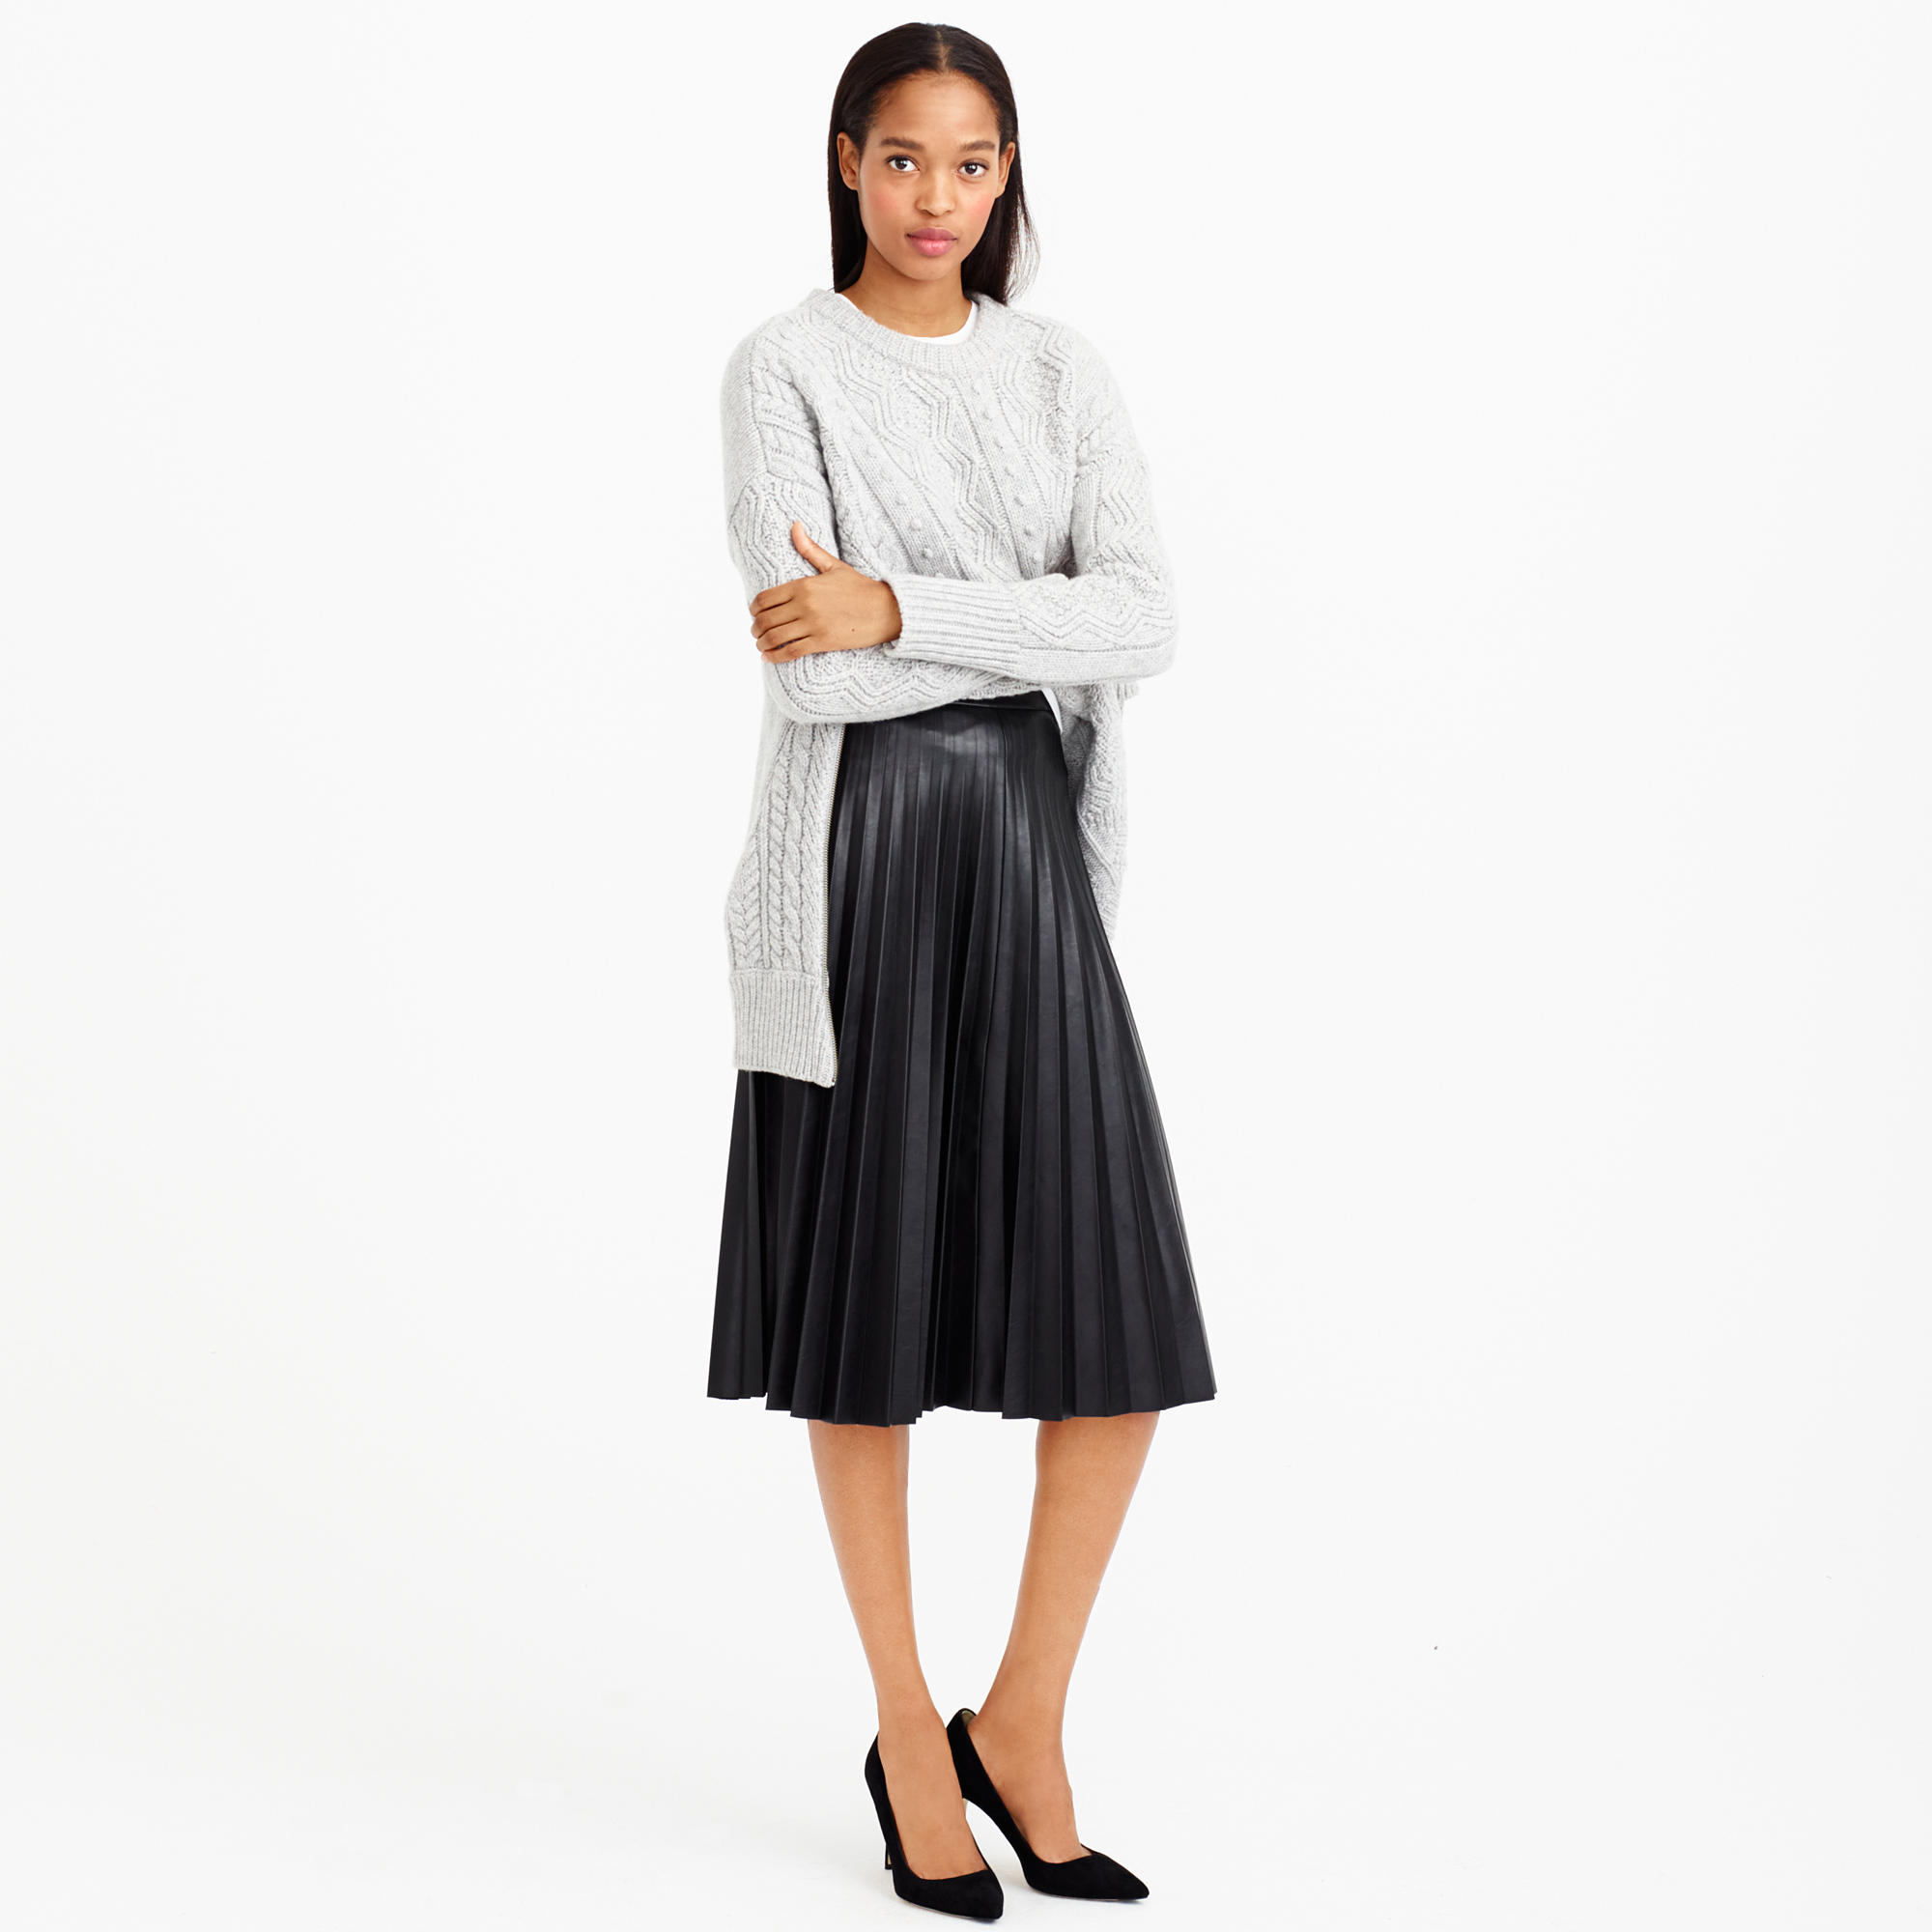 J.crew Petite Faux-leather Pleated Midi Skirt in Black | Lyst